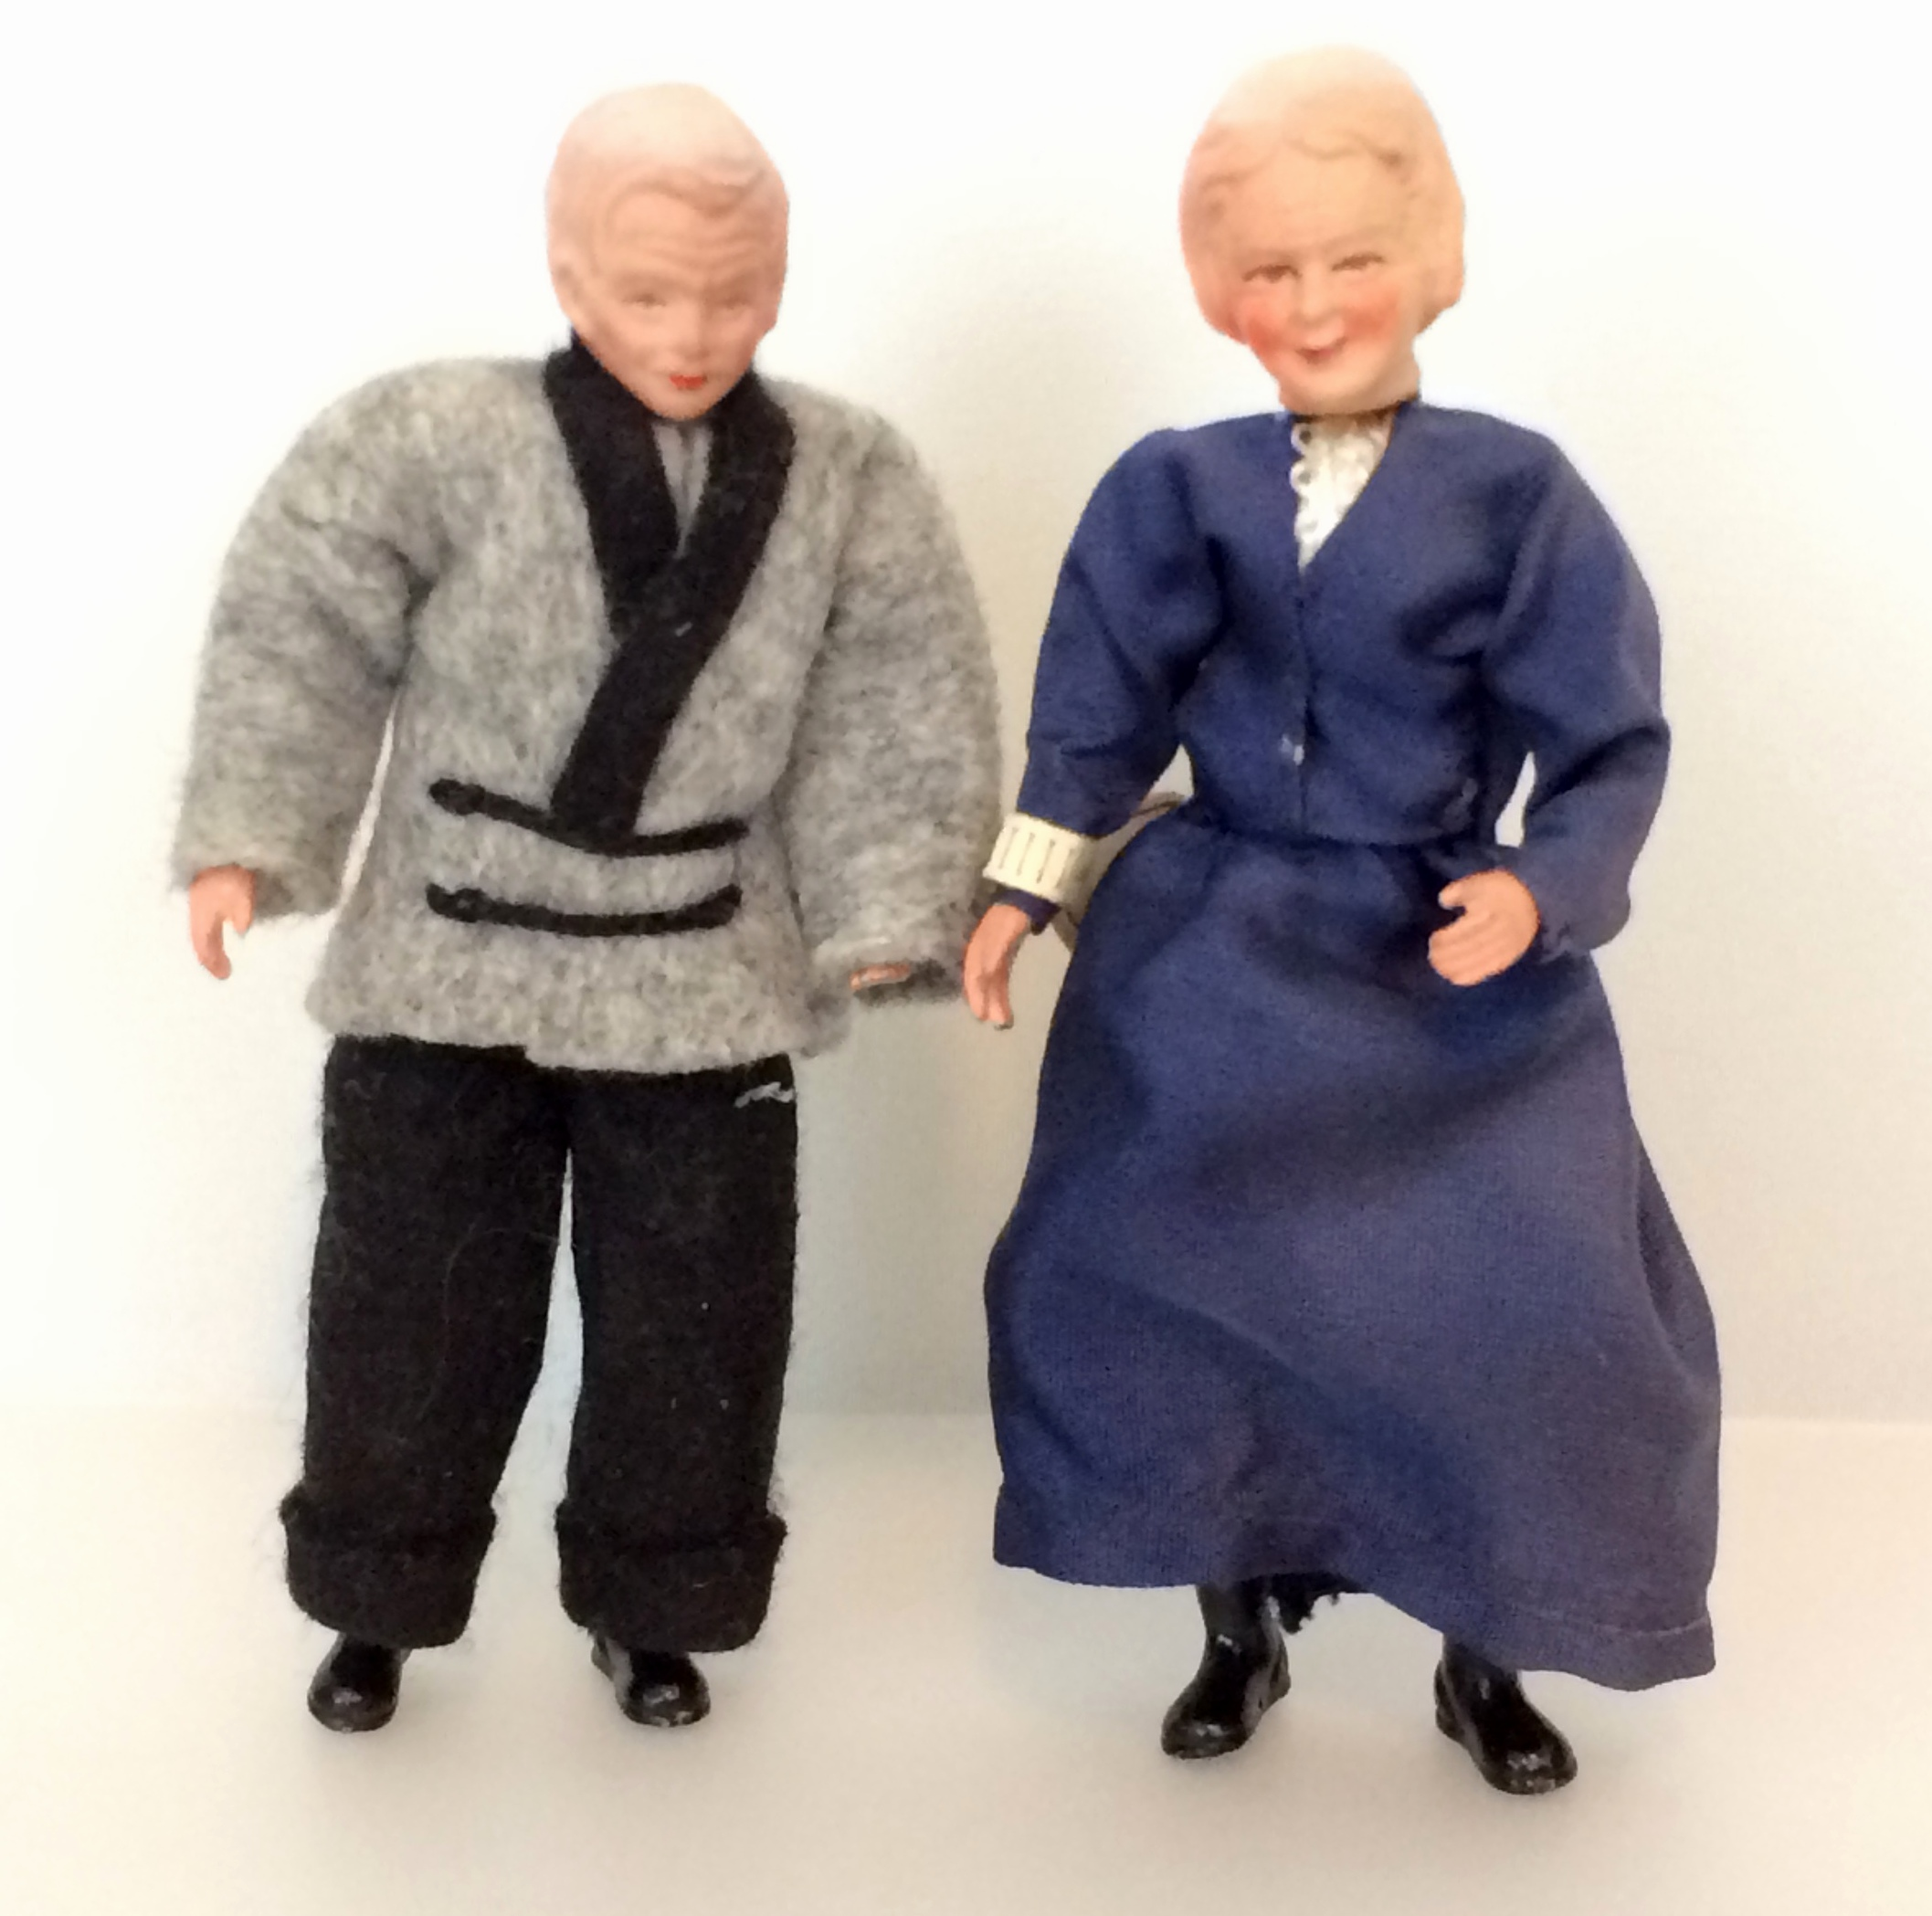 Caco grandfather and grandmother dolls ca 1950s or 60s from house above